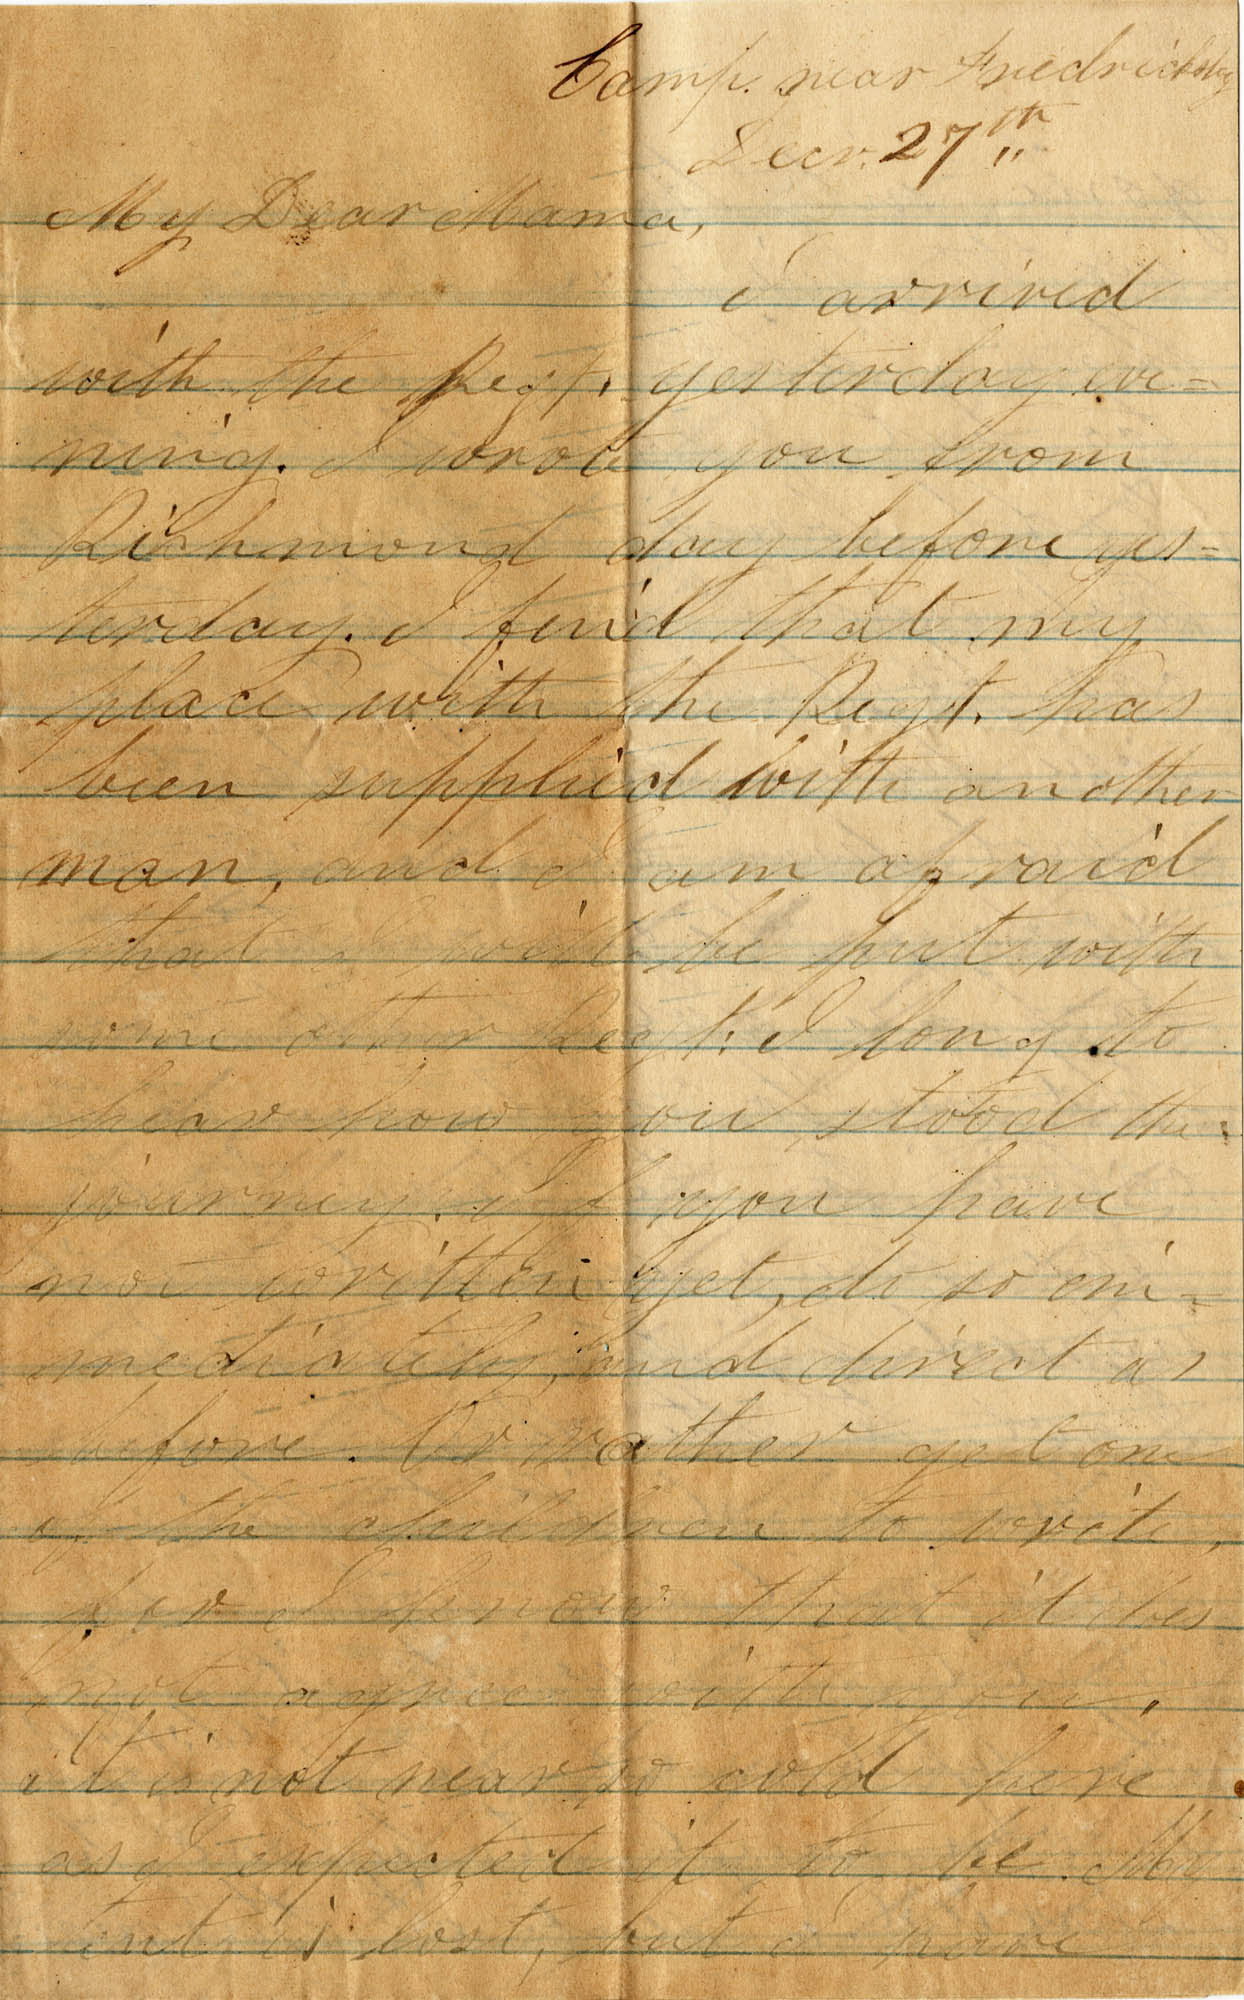 098. Willis Keith to Anna Bell Keith -- De27, 1863?